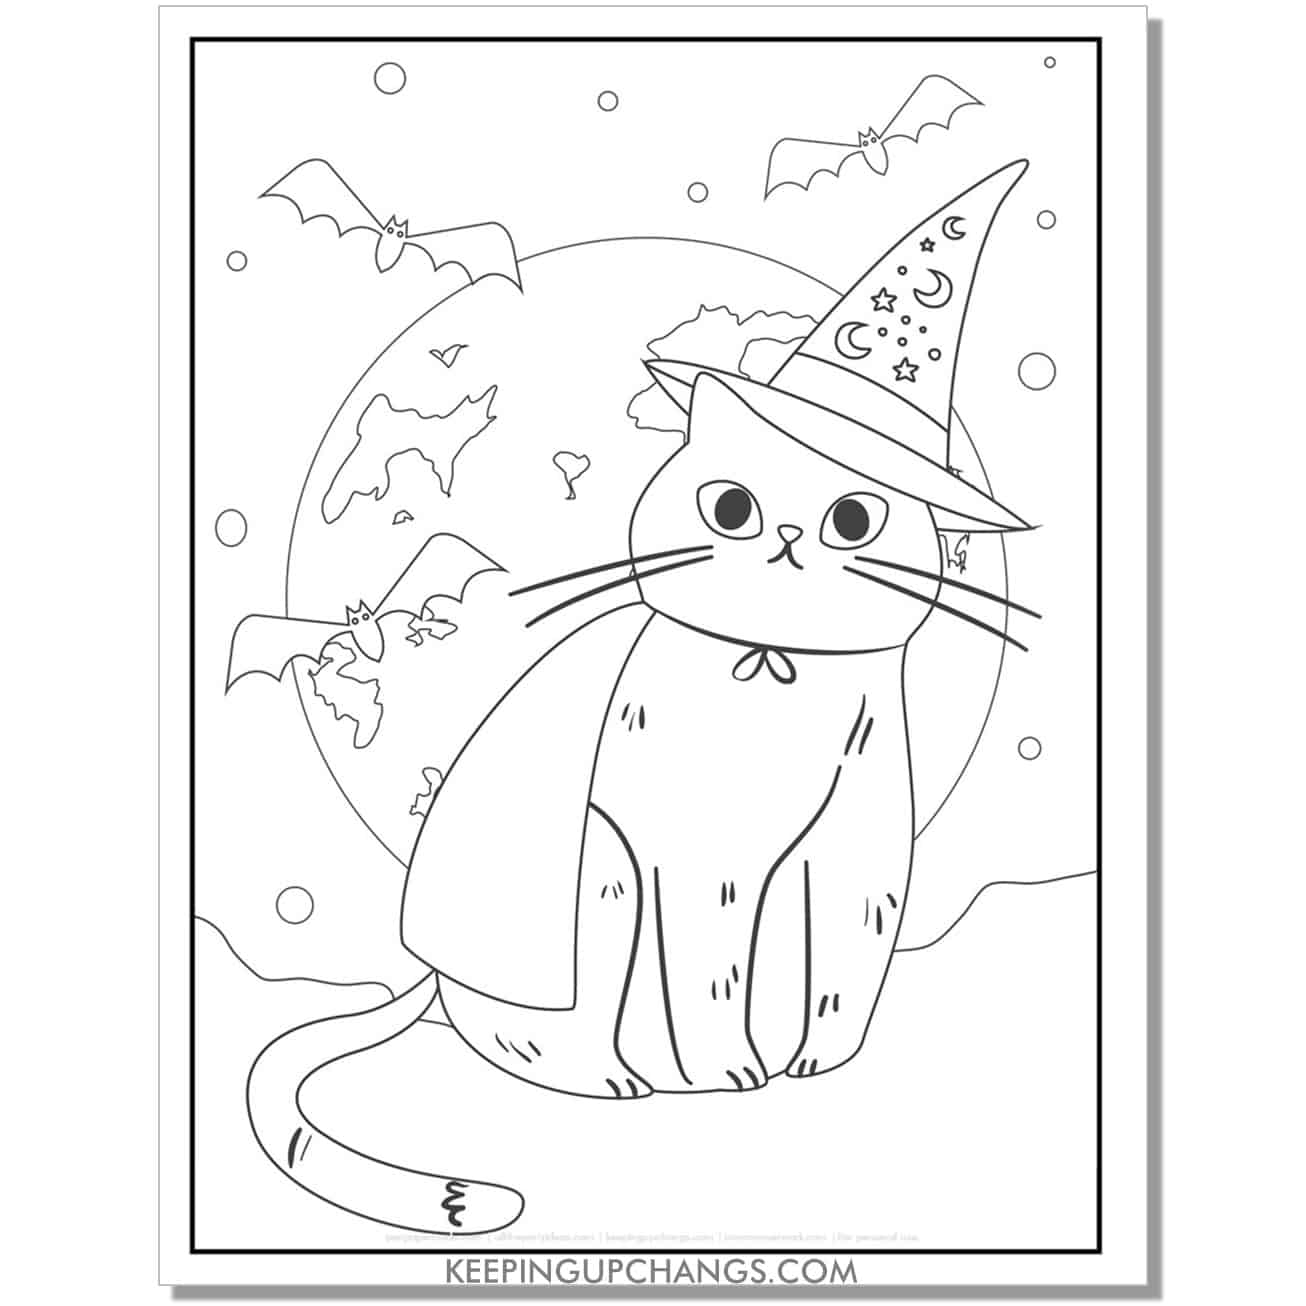 halloween cat with witch hat coloring page for toddlers.